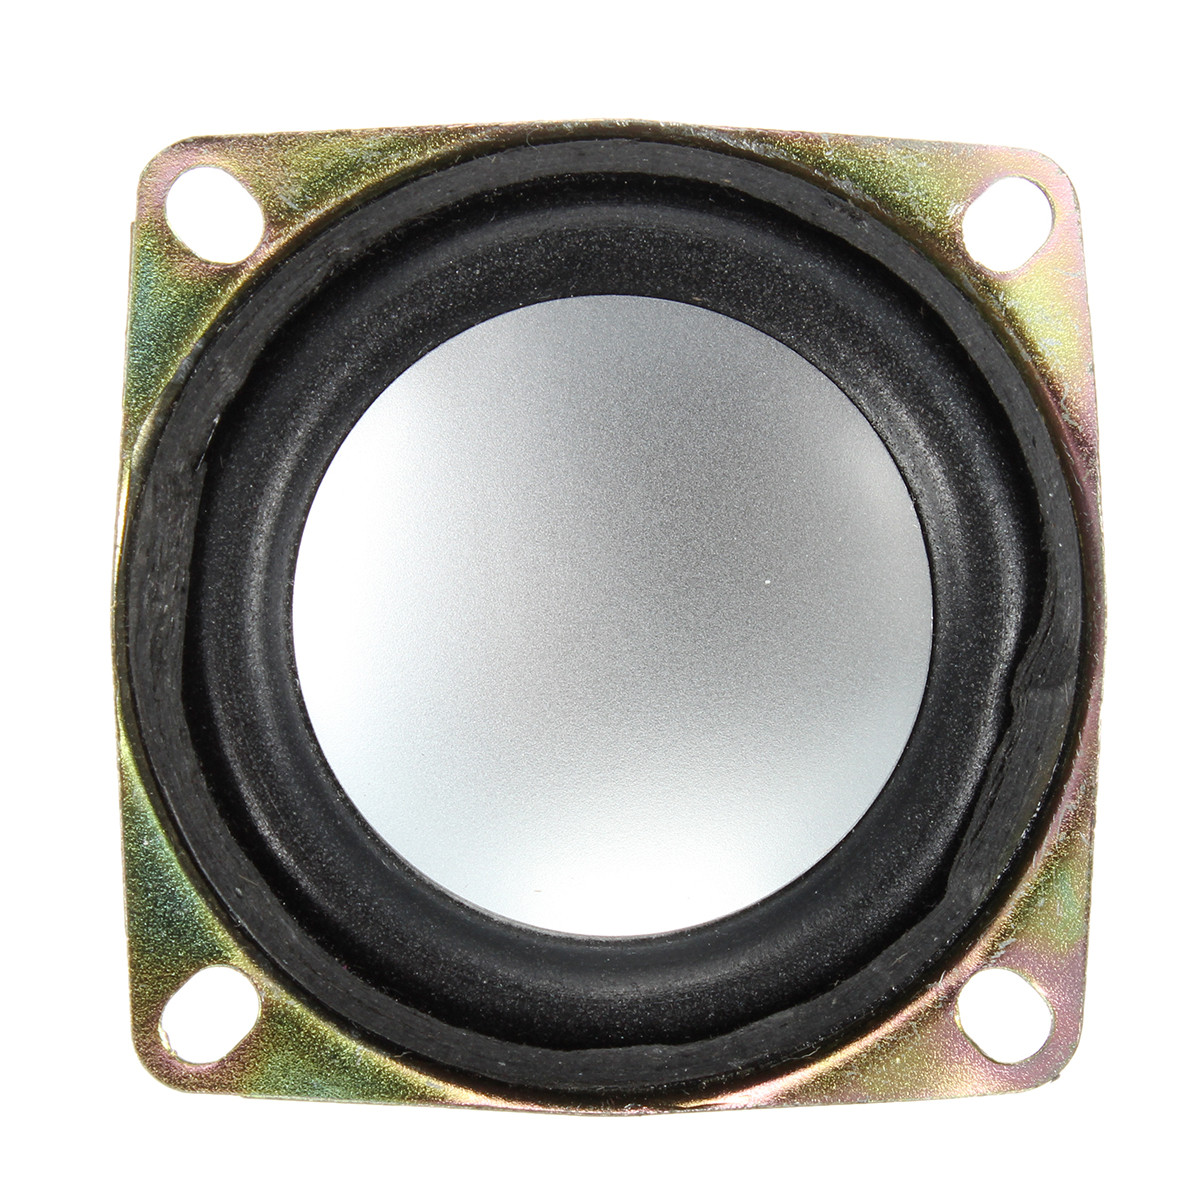 1 x Speaker. More Detailed Photos: 52mm 4 ohm Audio Speaker DIY 2 inch ...